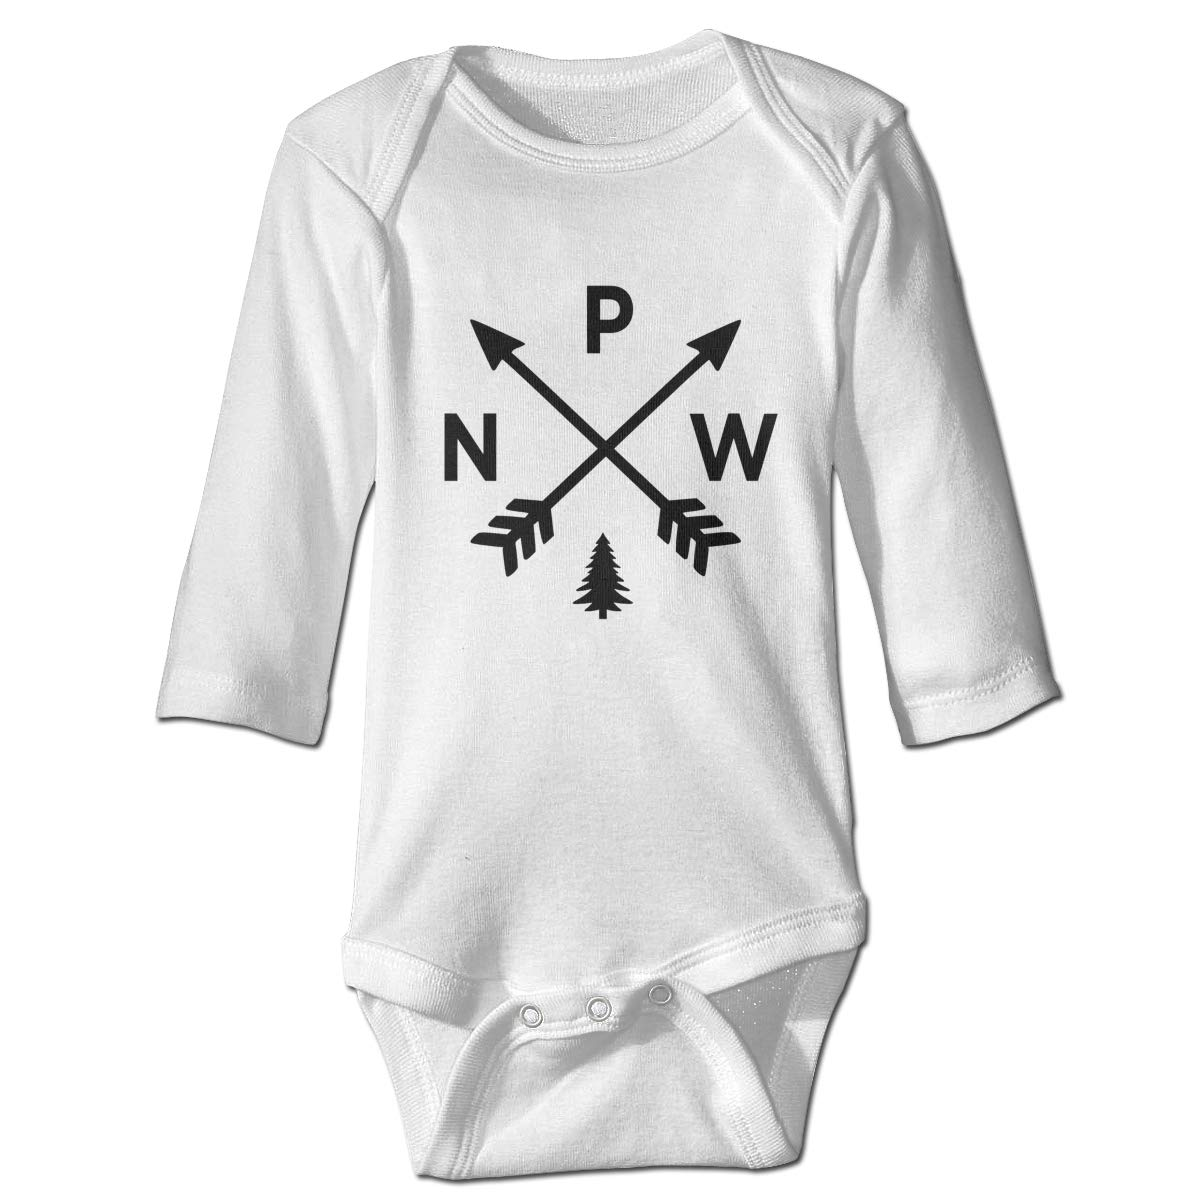 Pacific North West Toddler//Infant Jumpsuit Onesies Funny Clothes